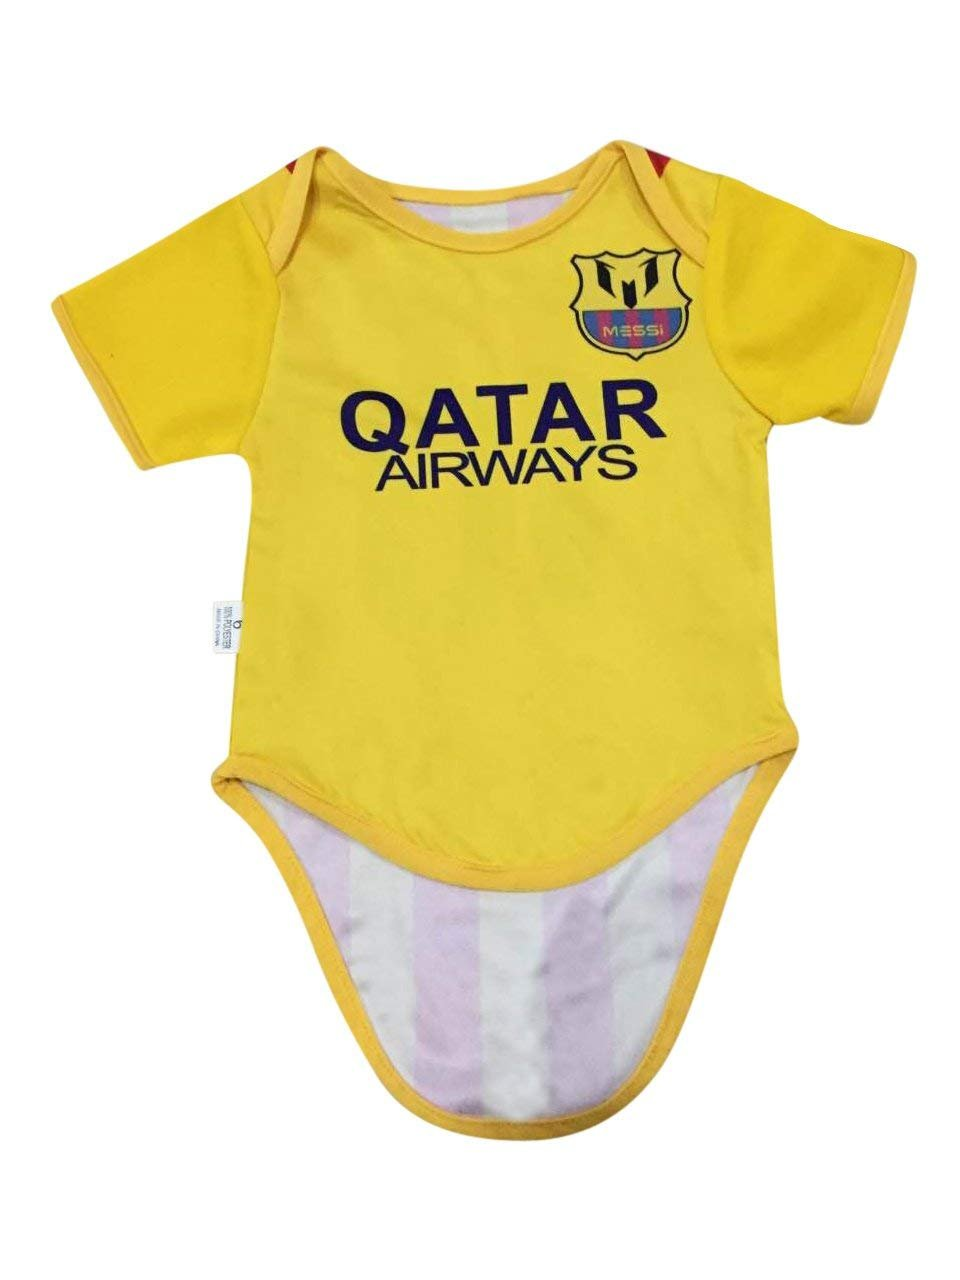 231196e8f72 Leo Messi #10 Barcelona Soccer Jersey Baby Infant & Toddler Rompers Body  2-Pack